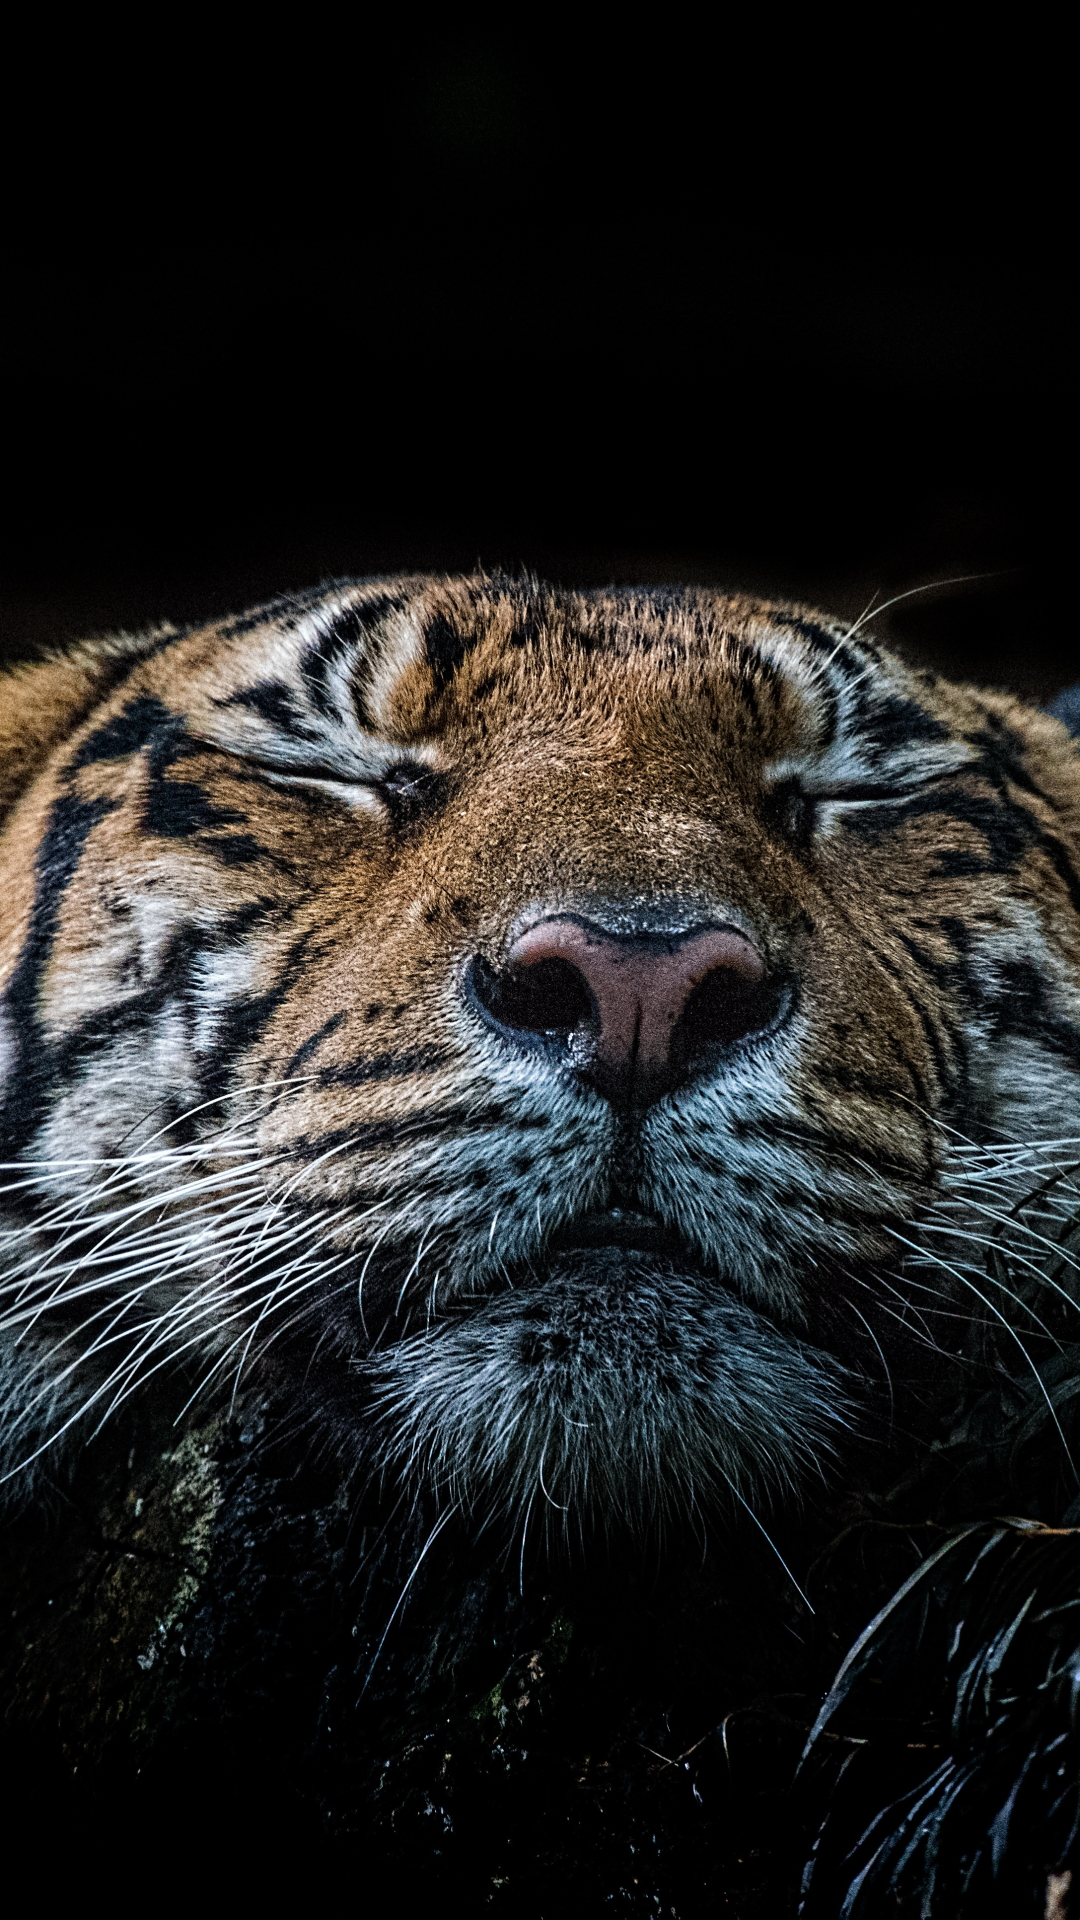 Tiger Mobile Phone Wallpapers Wallpapers Download For Mobile Phone Hd